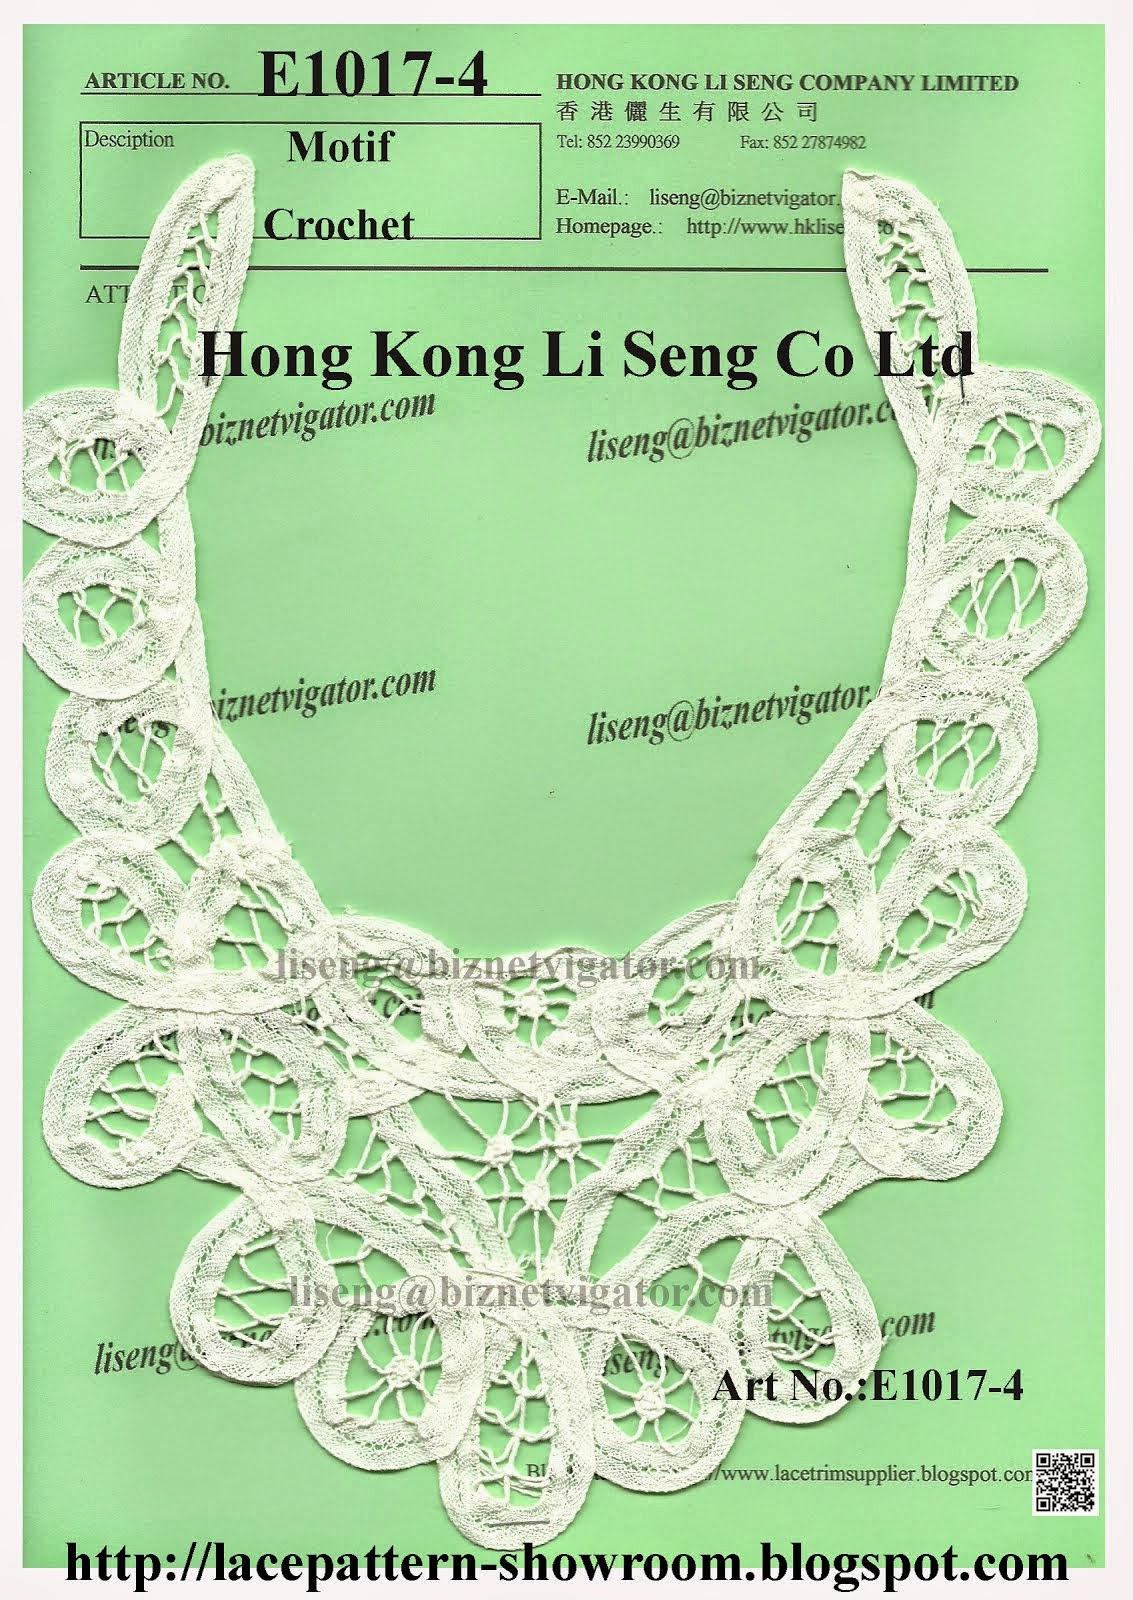 Chinese Handmade Crochet Motif and Applique Manufacturer - Hong Kong Li Seng Co Ltd